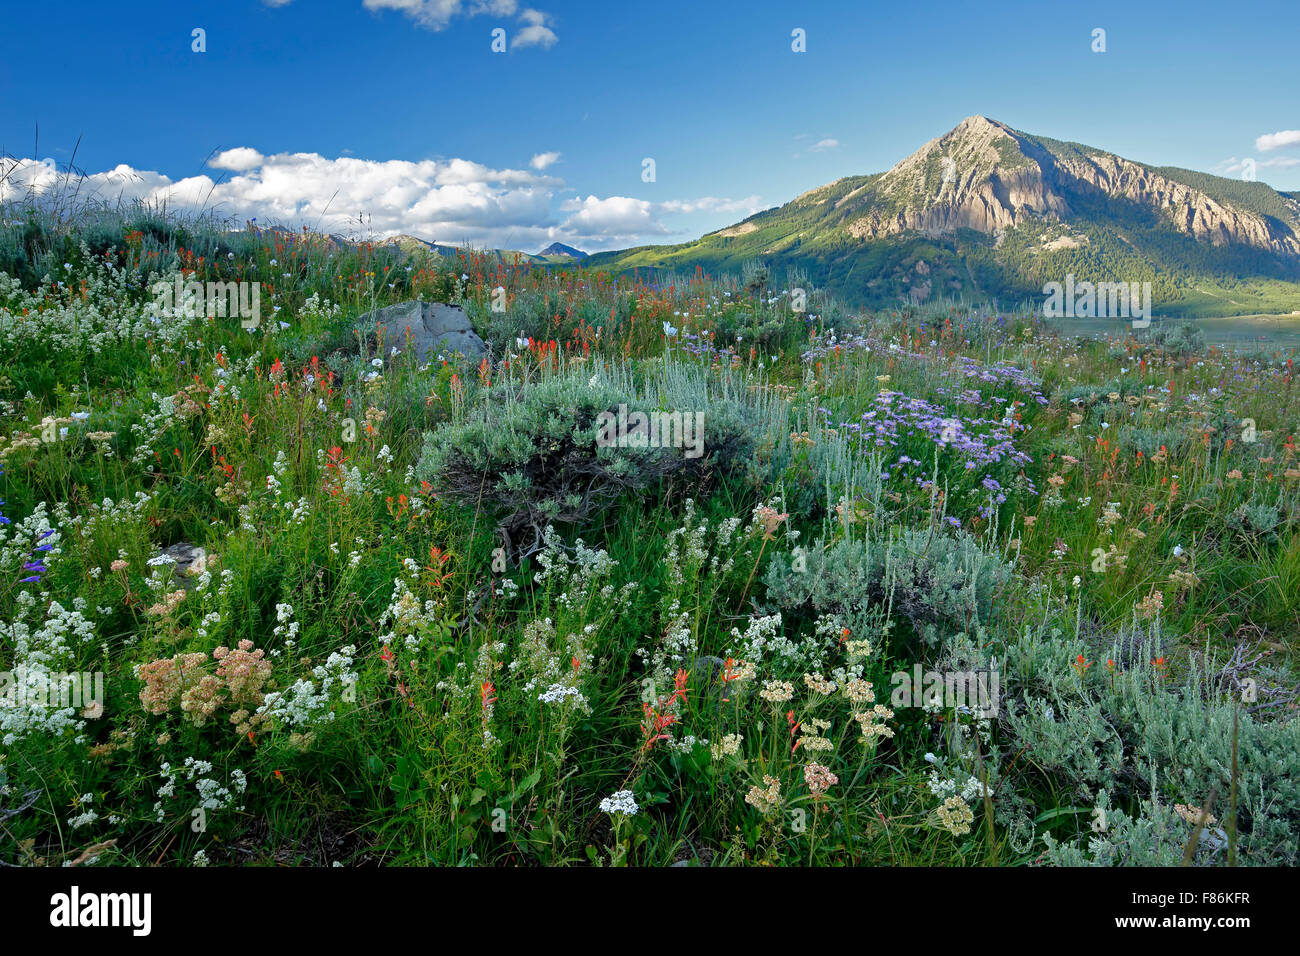 Wildblumen und Mount Crested Butte (12.162 ft.), Crested Butte, Colorado USA Stockbild